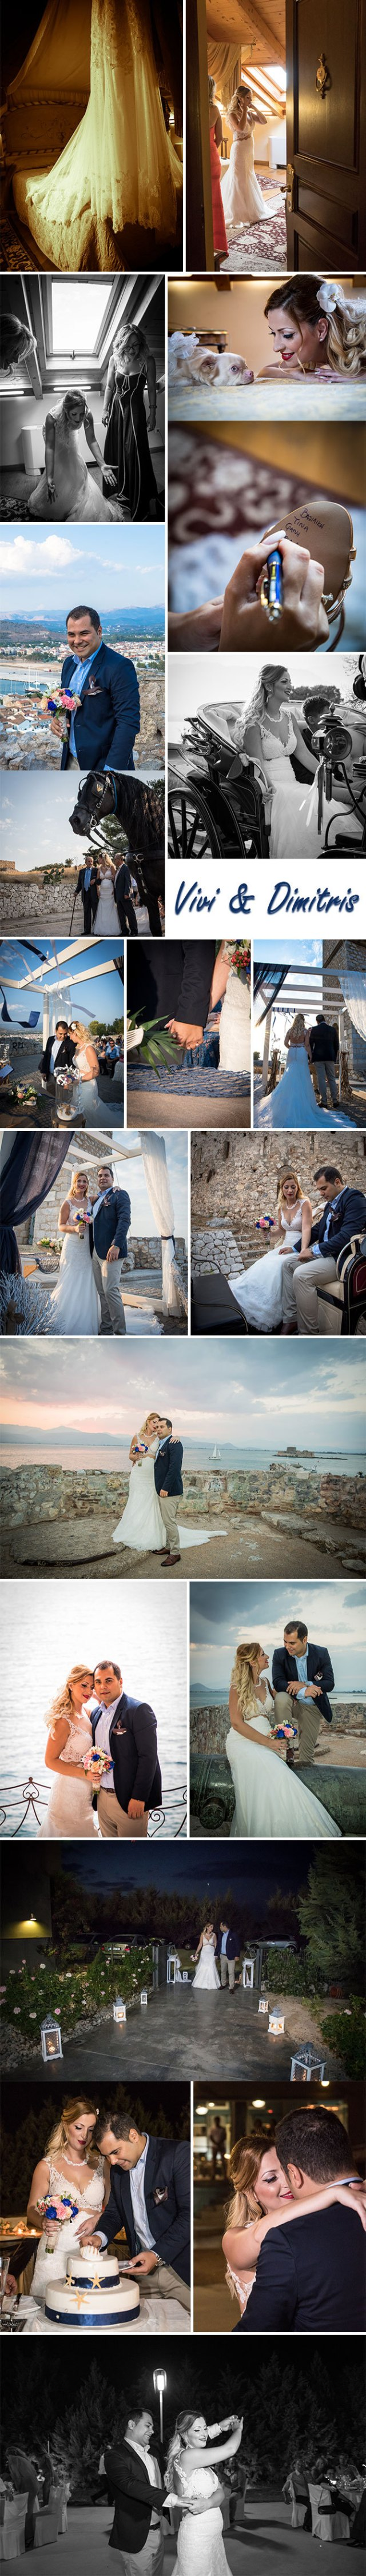 civil_wedding_nafplio